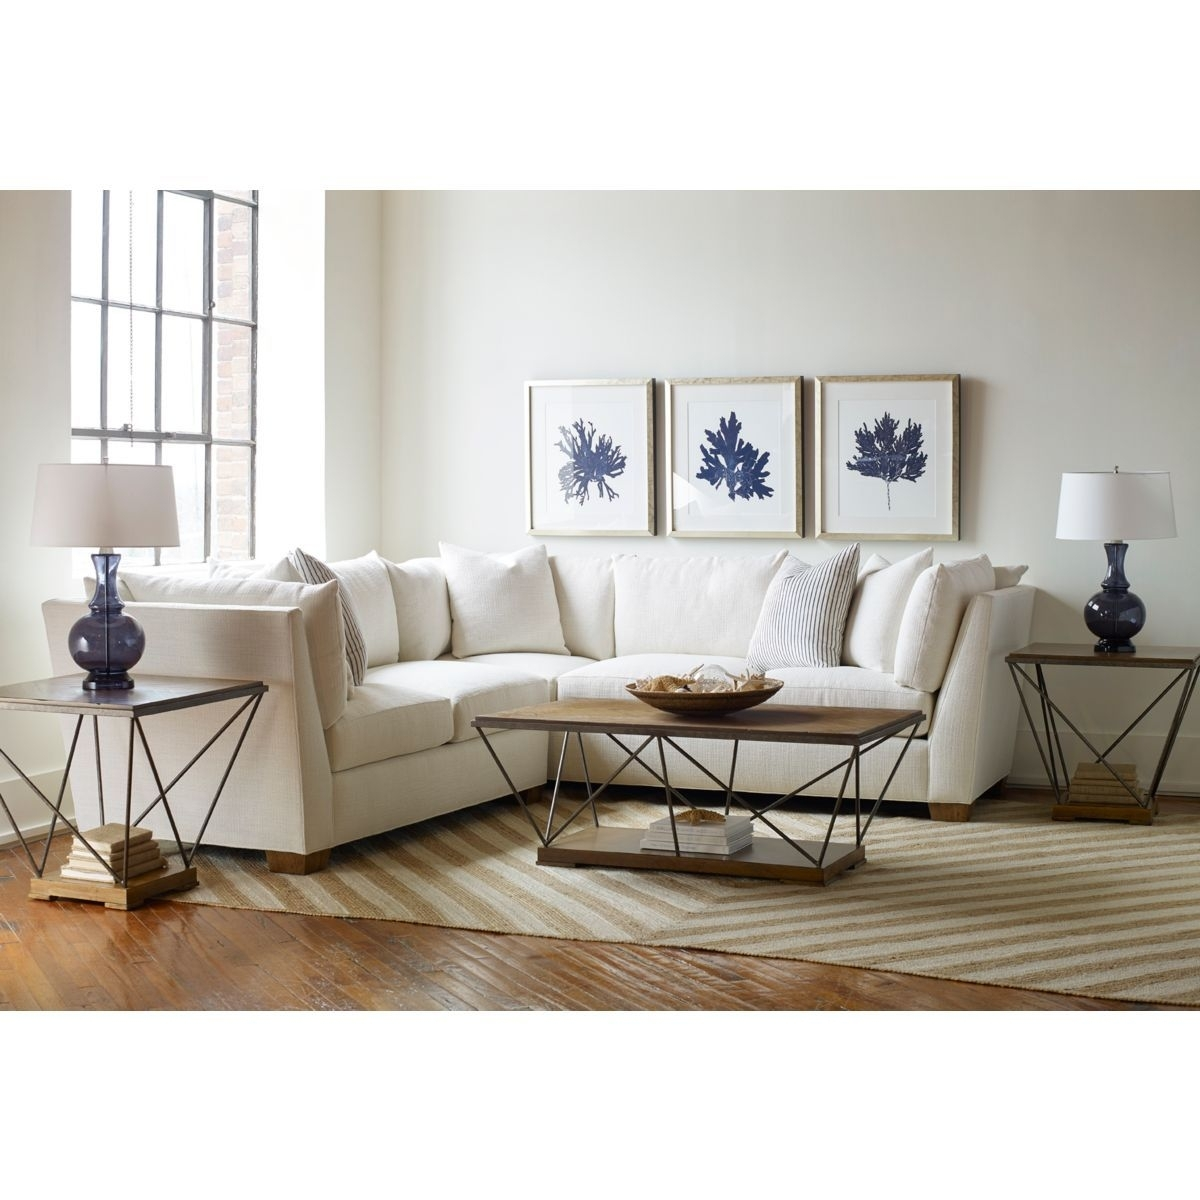 Drexel Heritage Burton Sectional | Furniture | Pinterest | House Inside Burton Leather 3 Piece Sectionals With Ottoman (View 11 of 25)